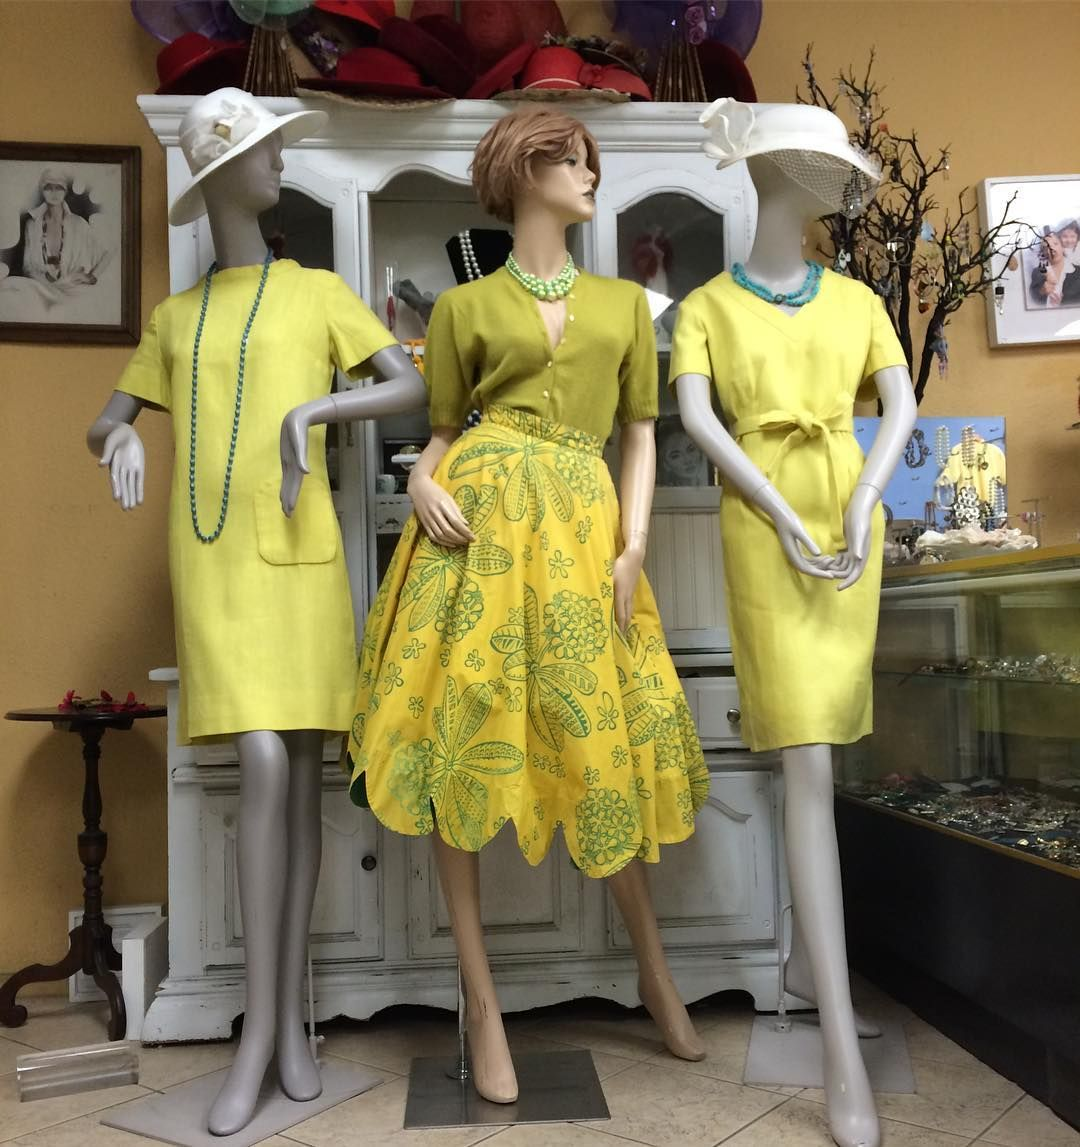 "40 Likes, 1 Comments - Adira's Vintage Boutique (@adirasboutique) on Instagram: ""50's and 60's Dresses!!! 60's Dresses!!!! Wardrobe-styling : Adira's Vintage Boutique  #lalaland…"""